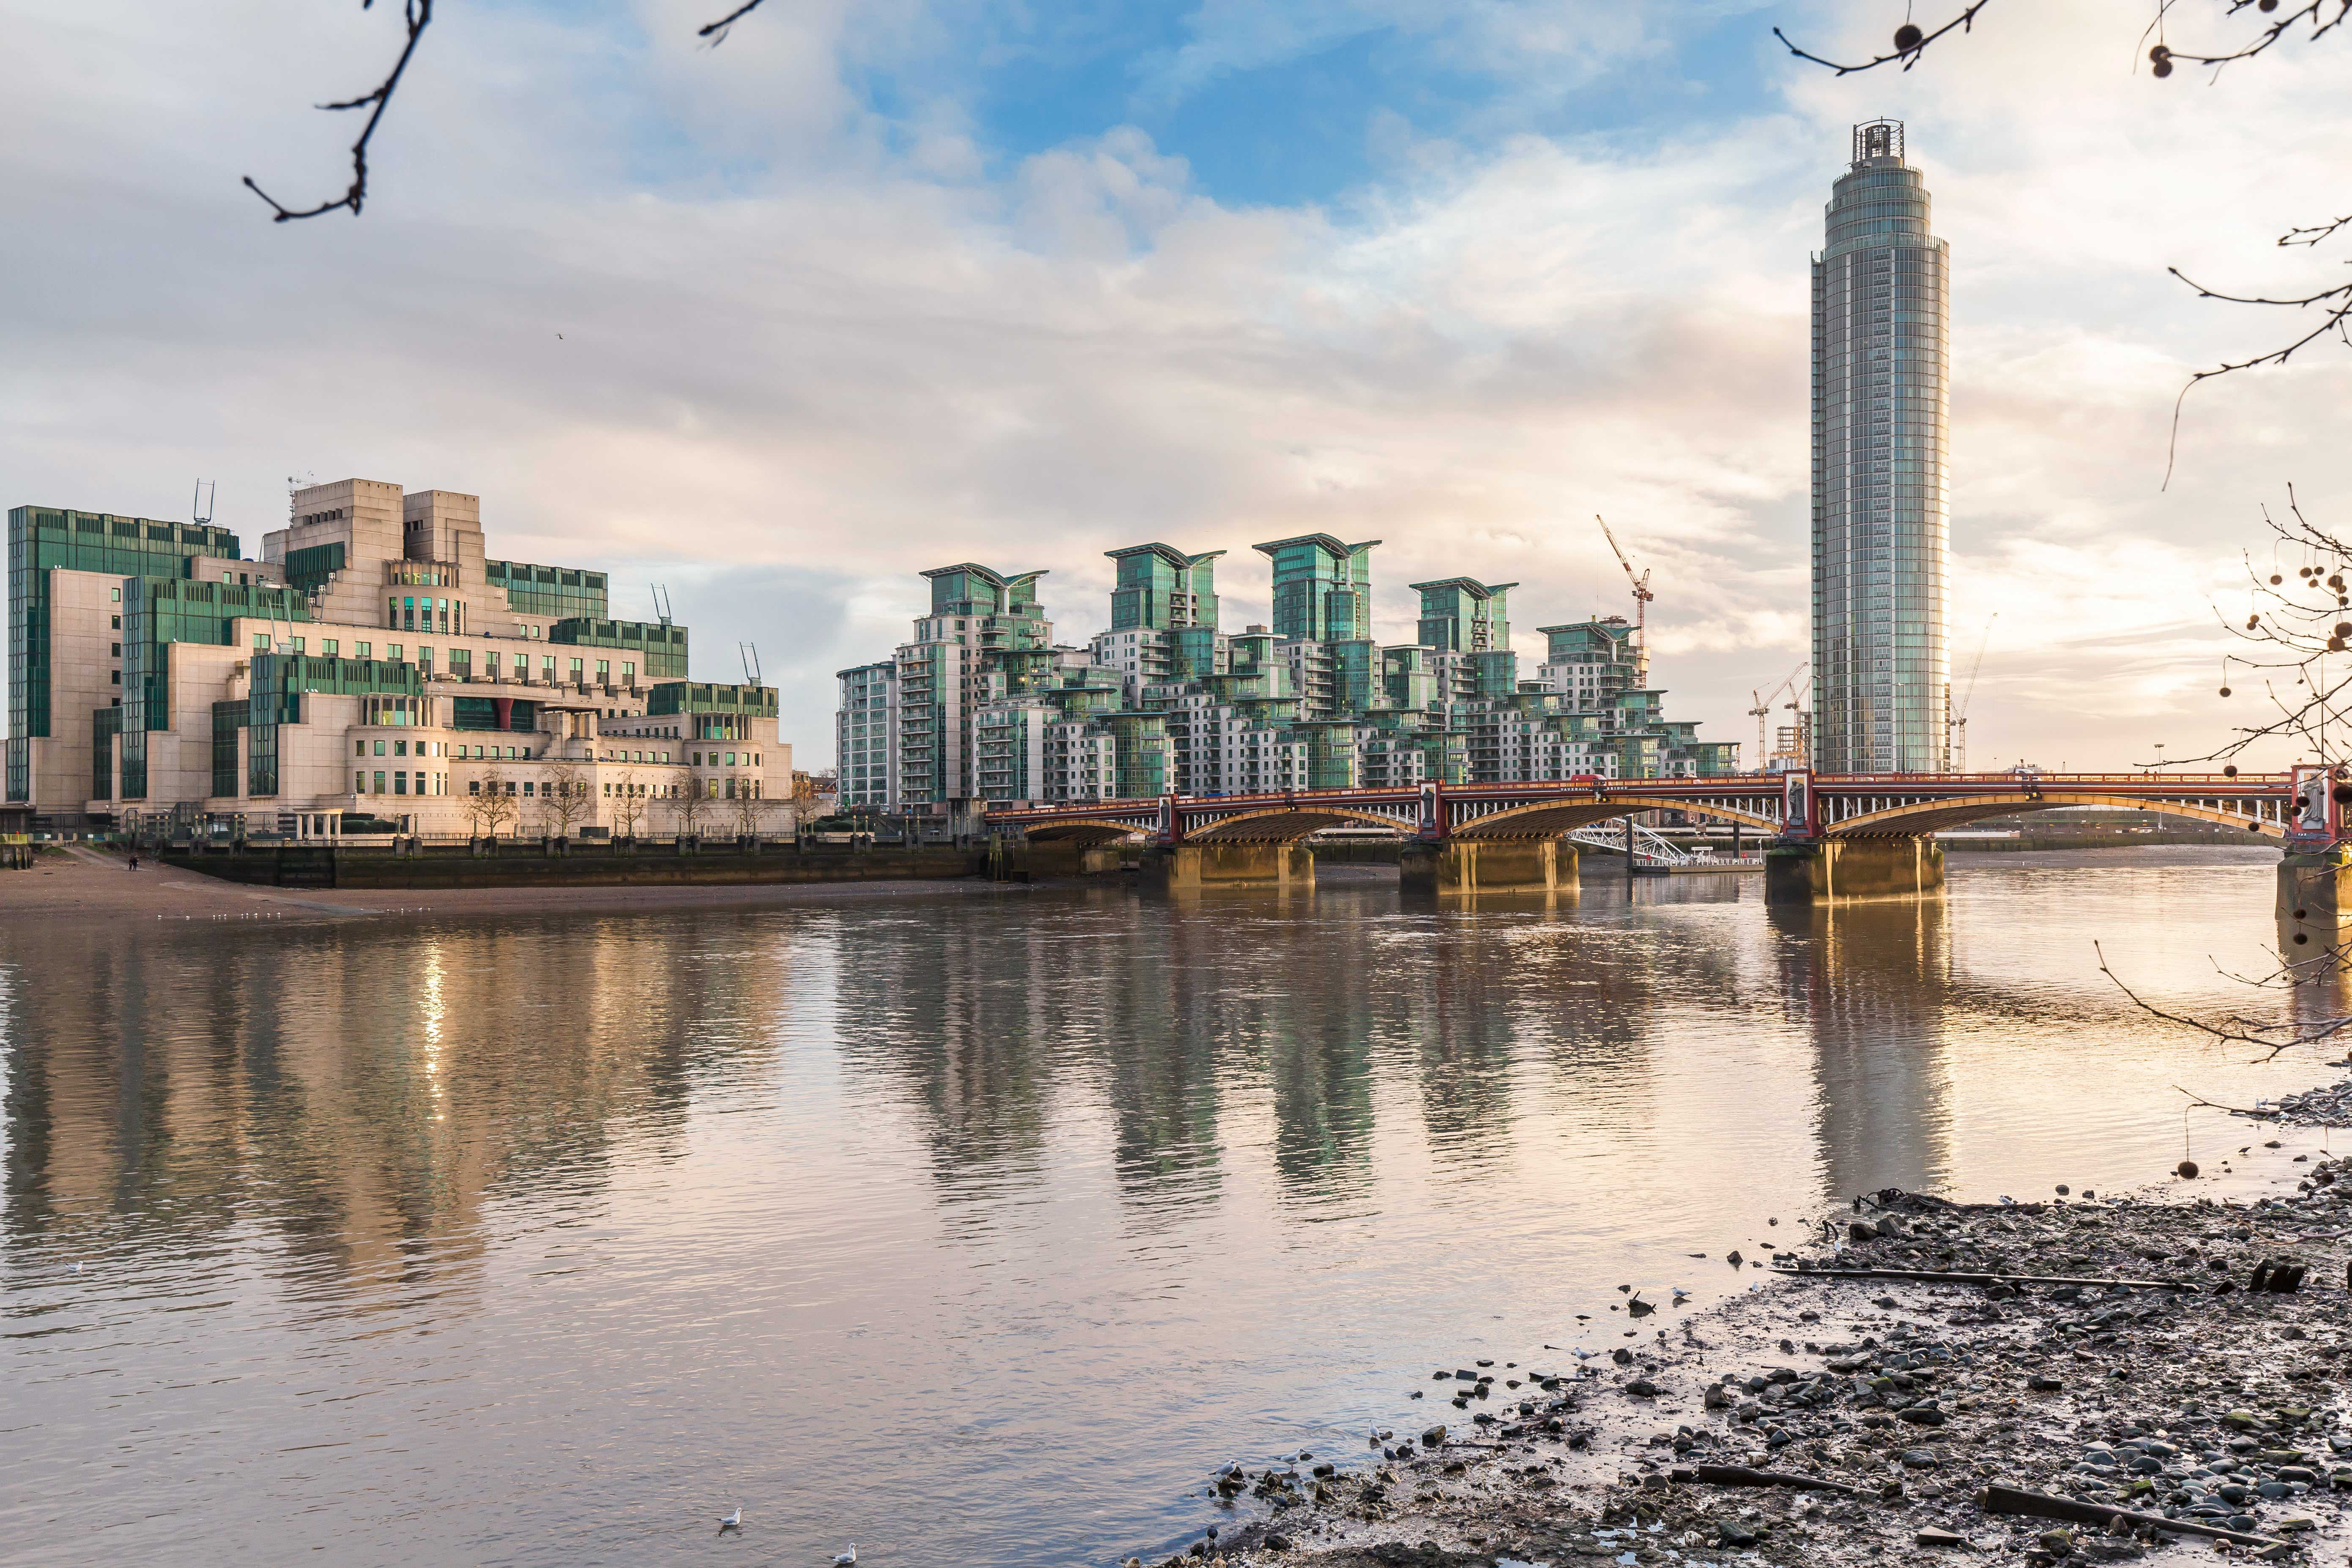 View of St George Wharf development across the river